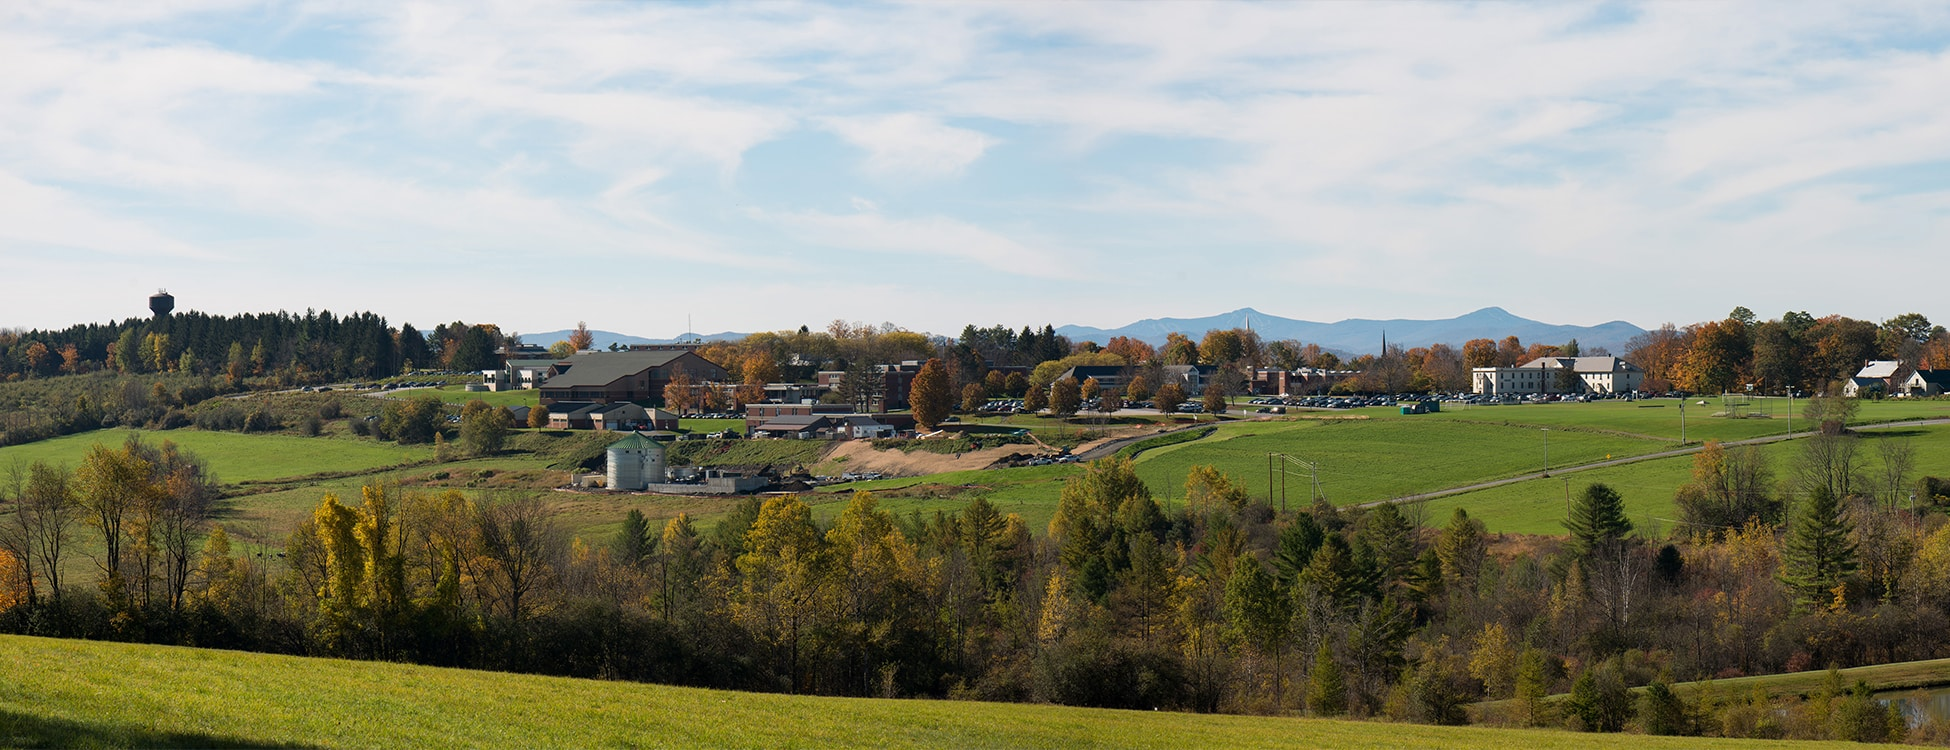 Randolph Center campus, view, digester